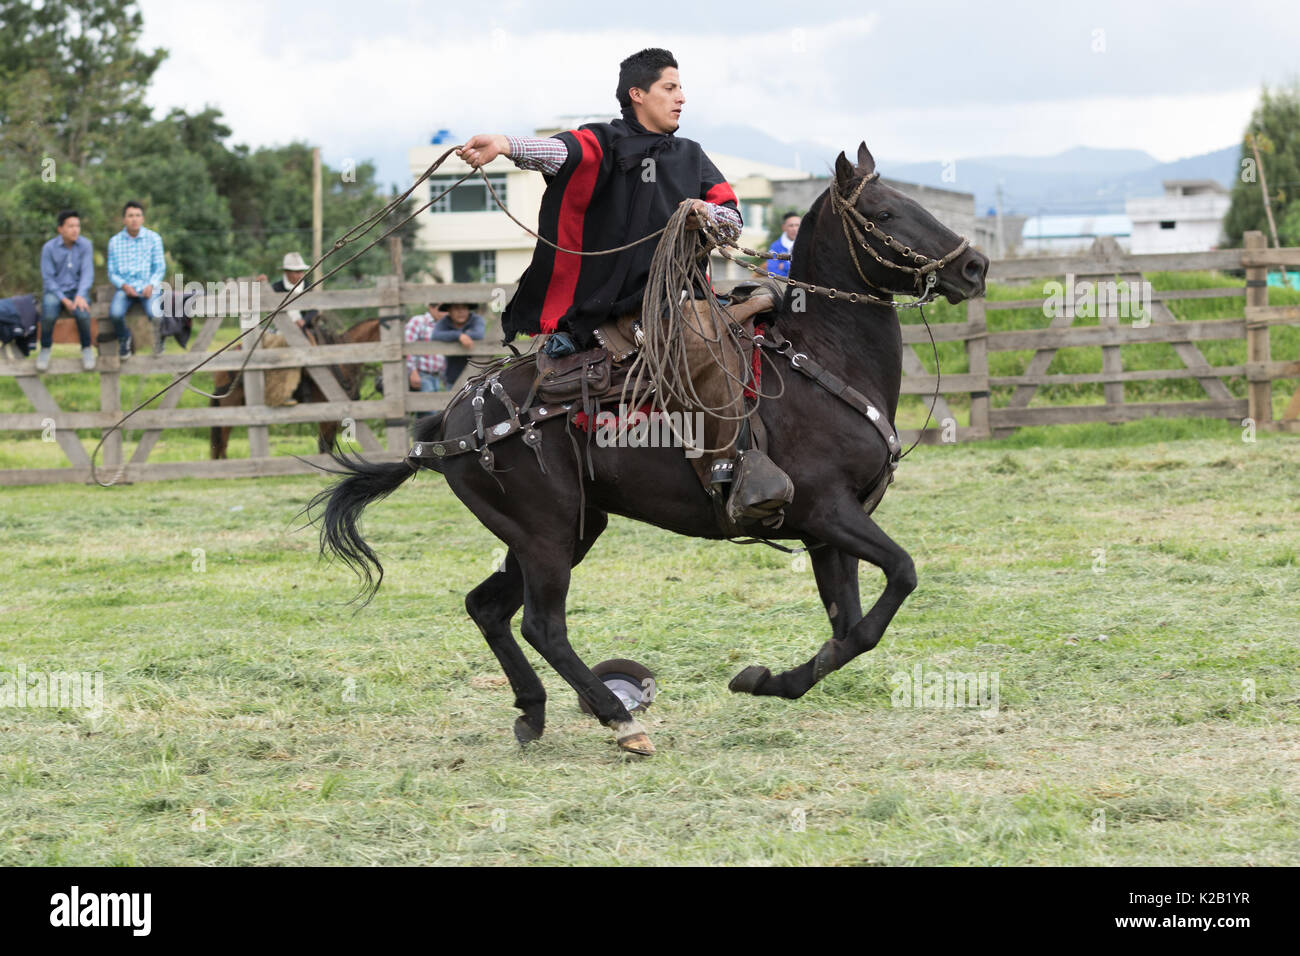 June 3, 2017 Machachi, Ecuador: cowboy called 'chagra' in the ANdes riding a horse while holding up a lasso - Stock Image